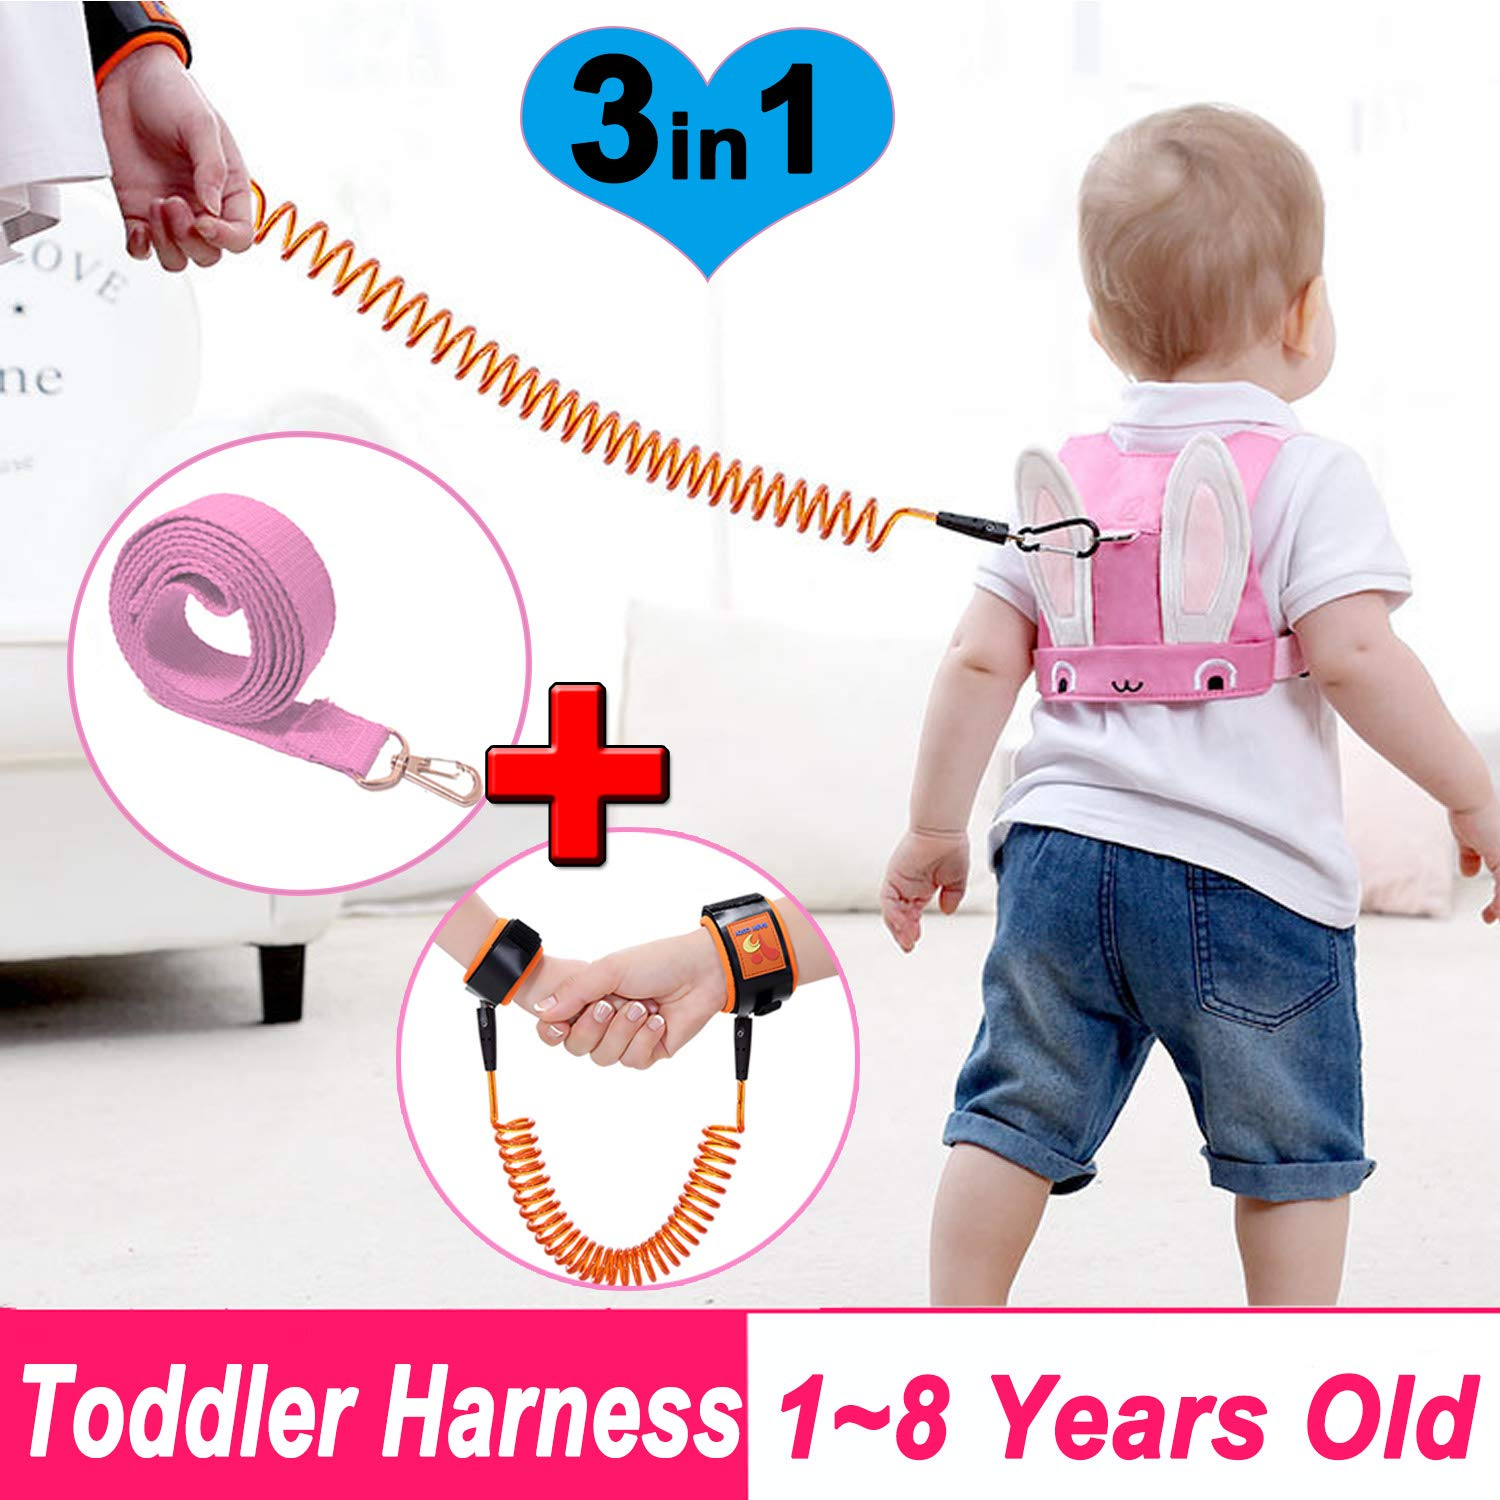 Kids Harness /& Toddler Leash for for Walking,Toddler Safety Harnesses Leashes,Safety Harness with Lock for Kids,Anti Lost Wrist Link Safety Wrist Link for Age 1-8 Year Old Boy Girl to Outdoor,Mall,Zoo